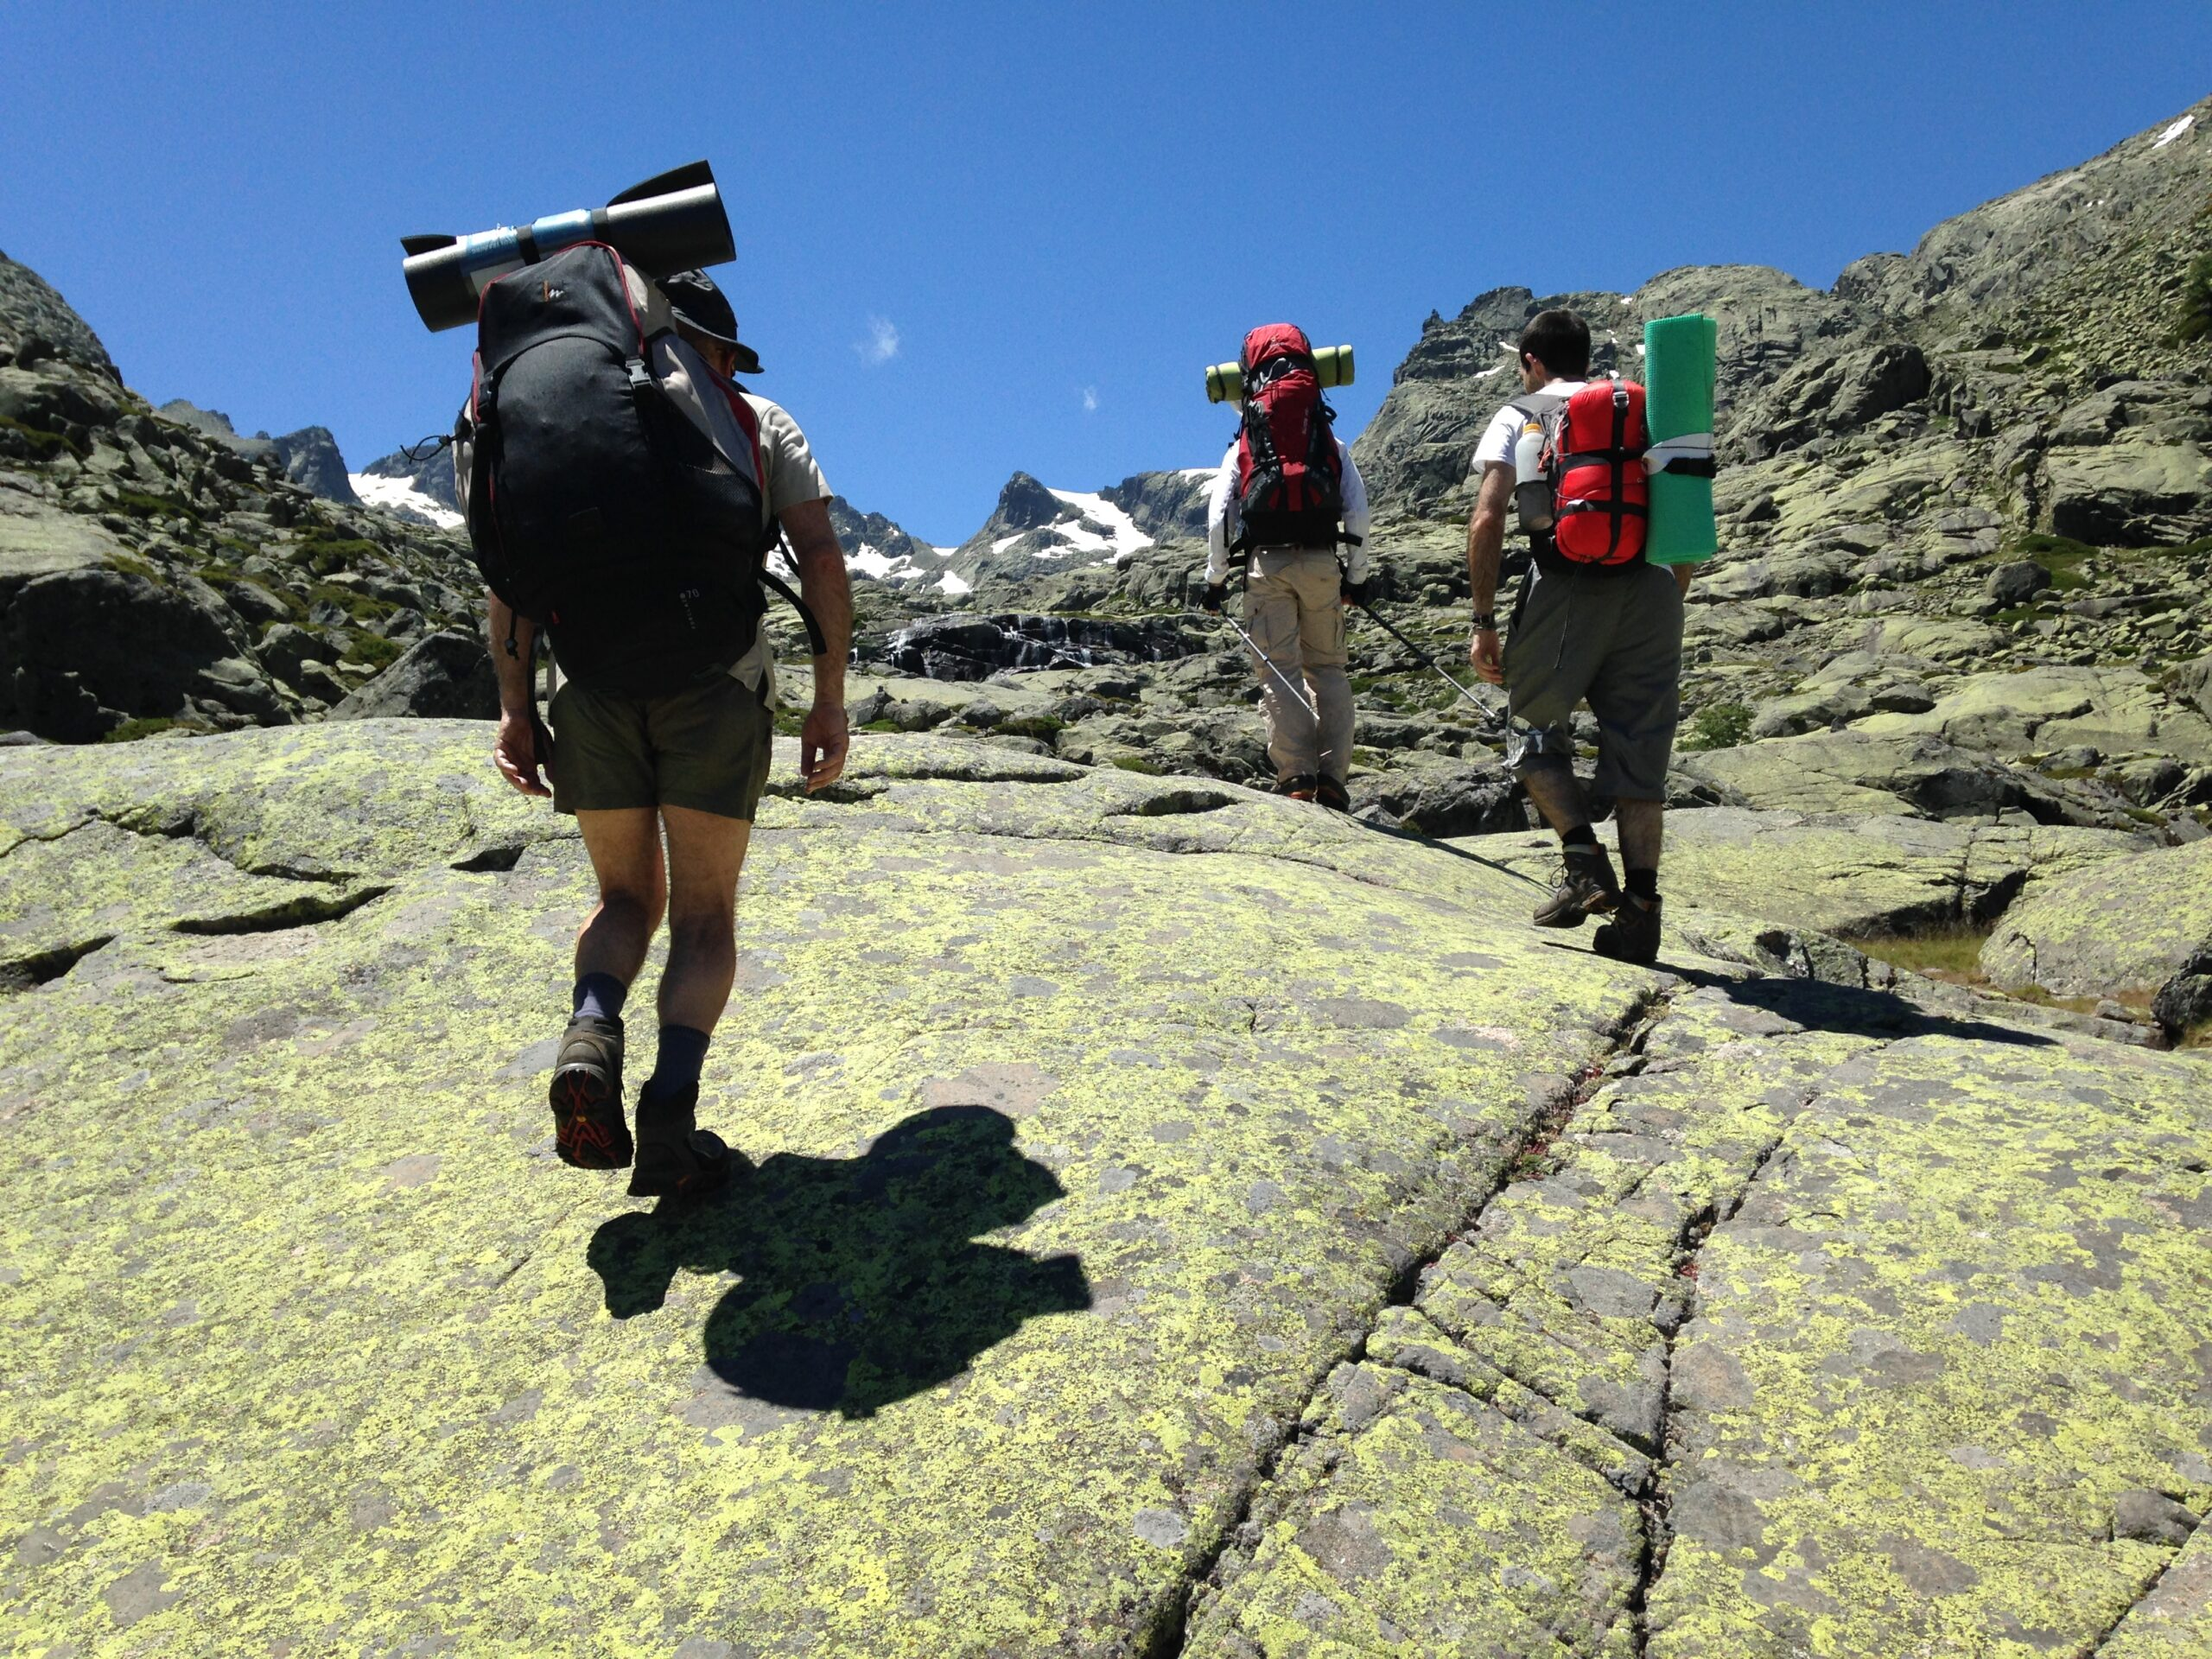 Discover Breathtaking Rock Formations In Our 2 Day Hike And Camp In Sierra De Gredos